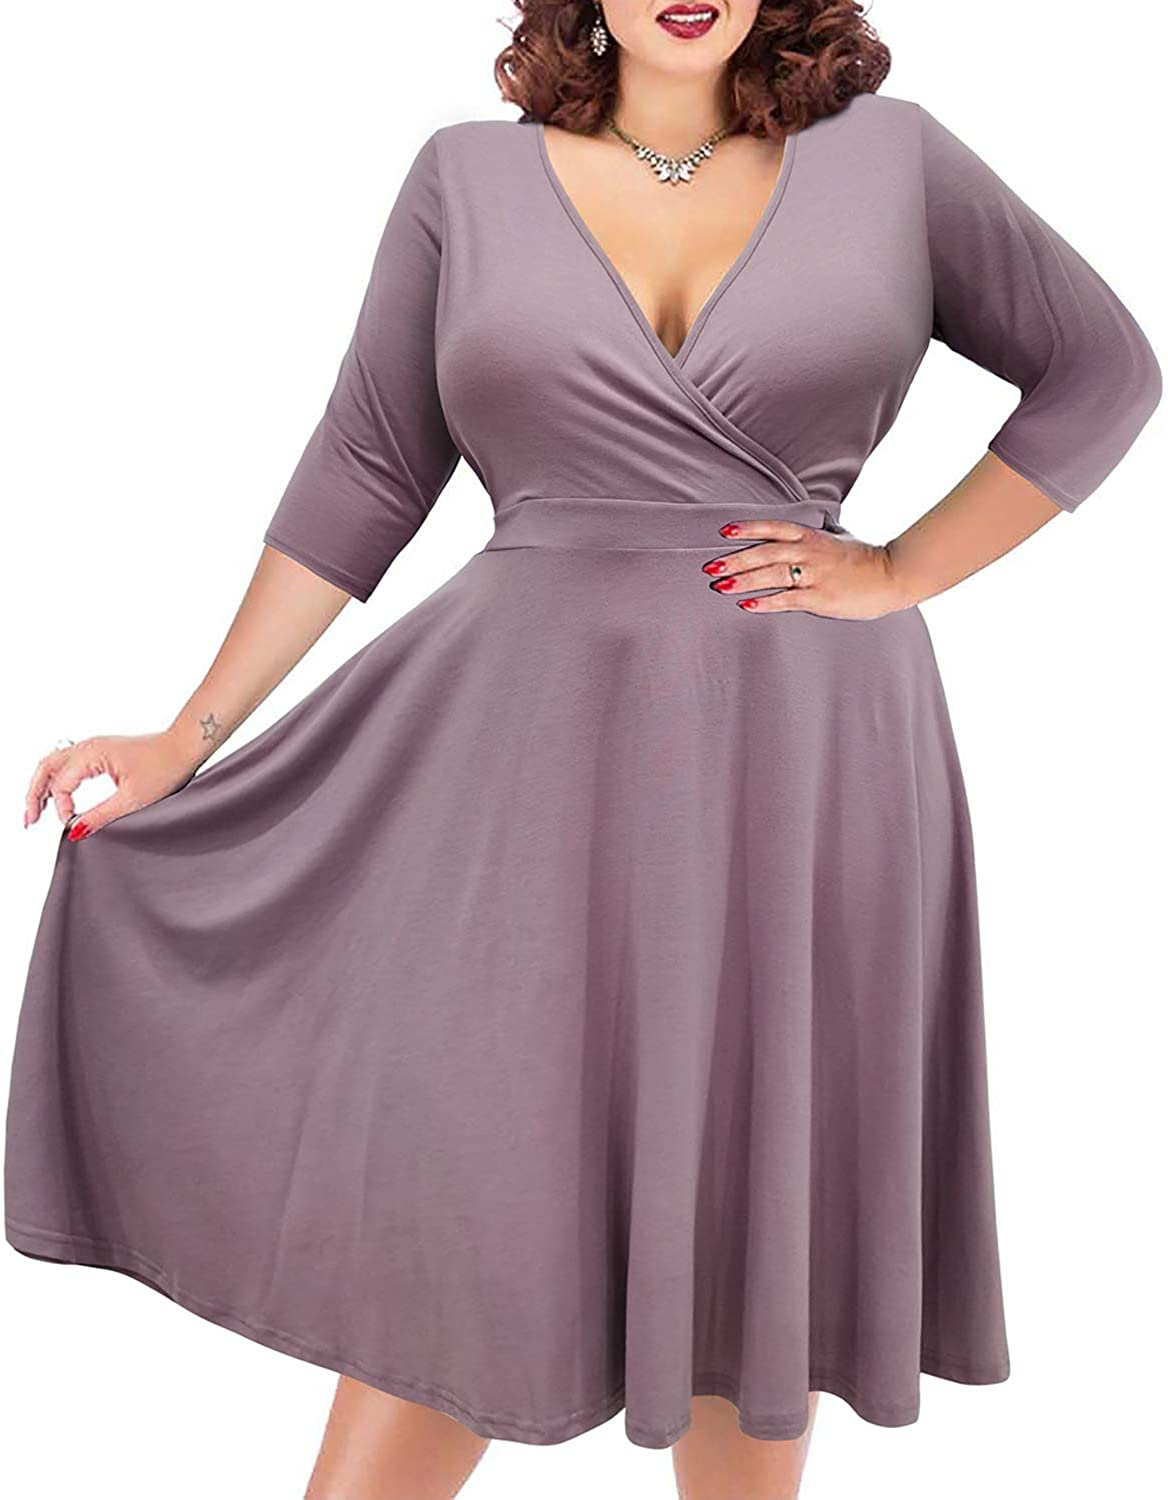 1950s Plus Size Dresses, Swing Dresses Nemidor Womens V-Neckline Stretchy Casual Midi Plus Size Bridesmaid Dress $29.99 AT vintagedancer.com